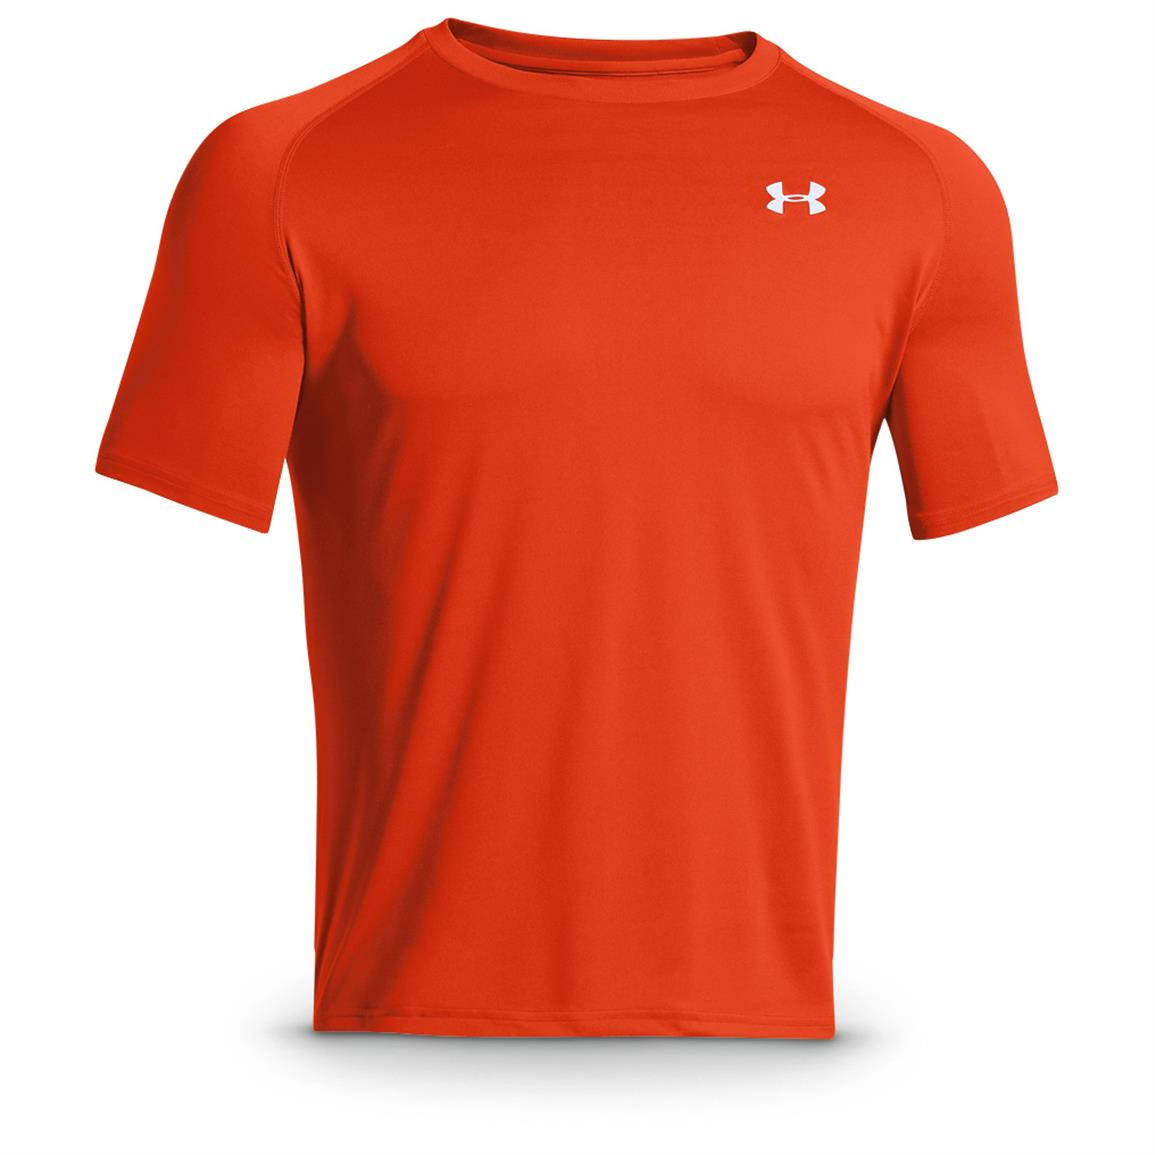 Under Armour Men's Tech Short-sleeved T-Shirt, Dark Orange